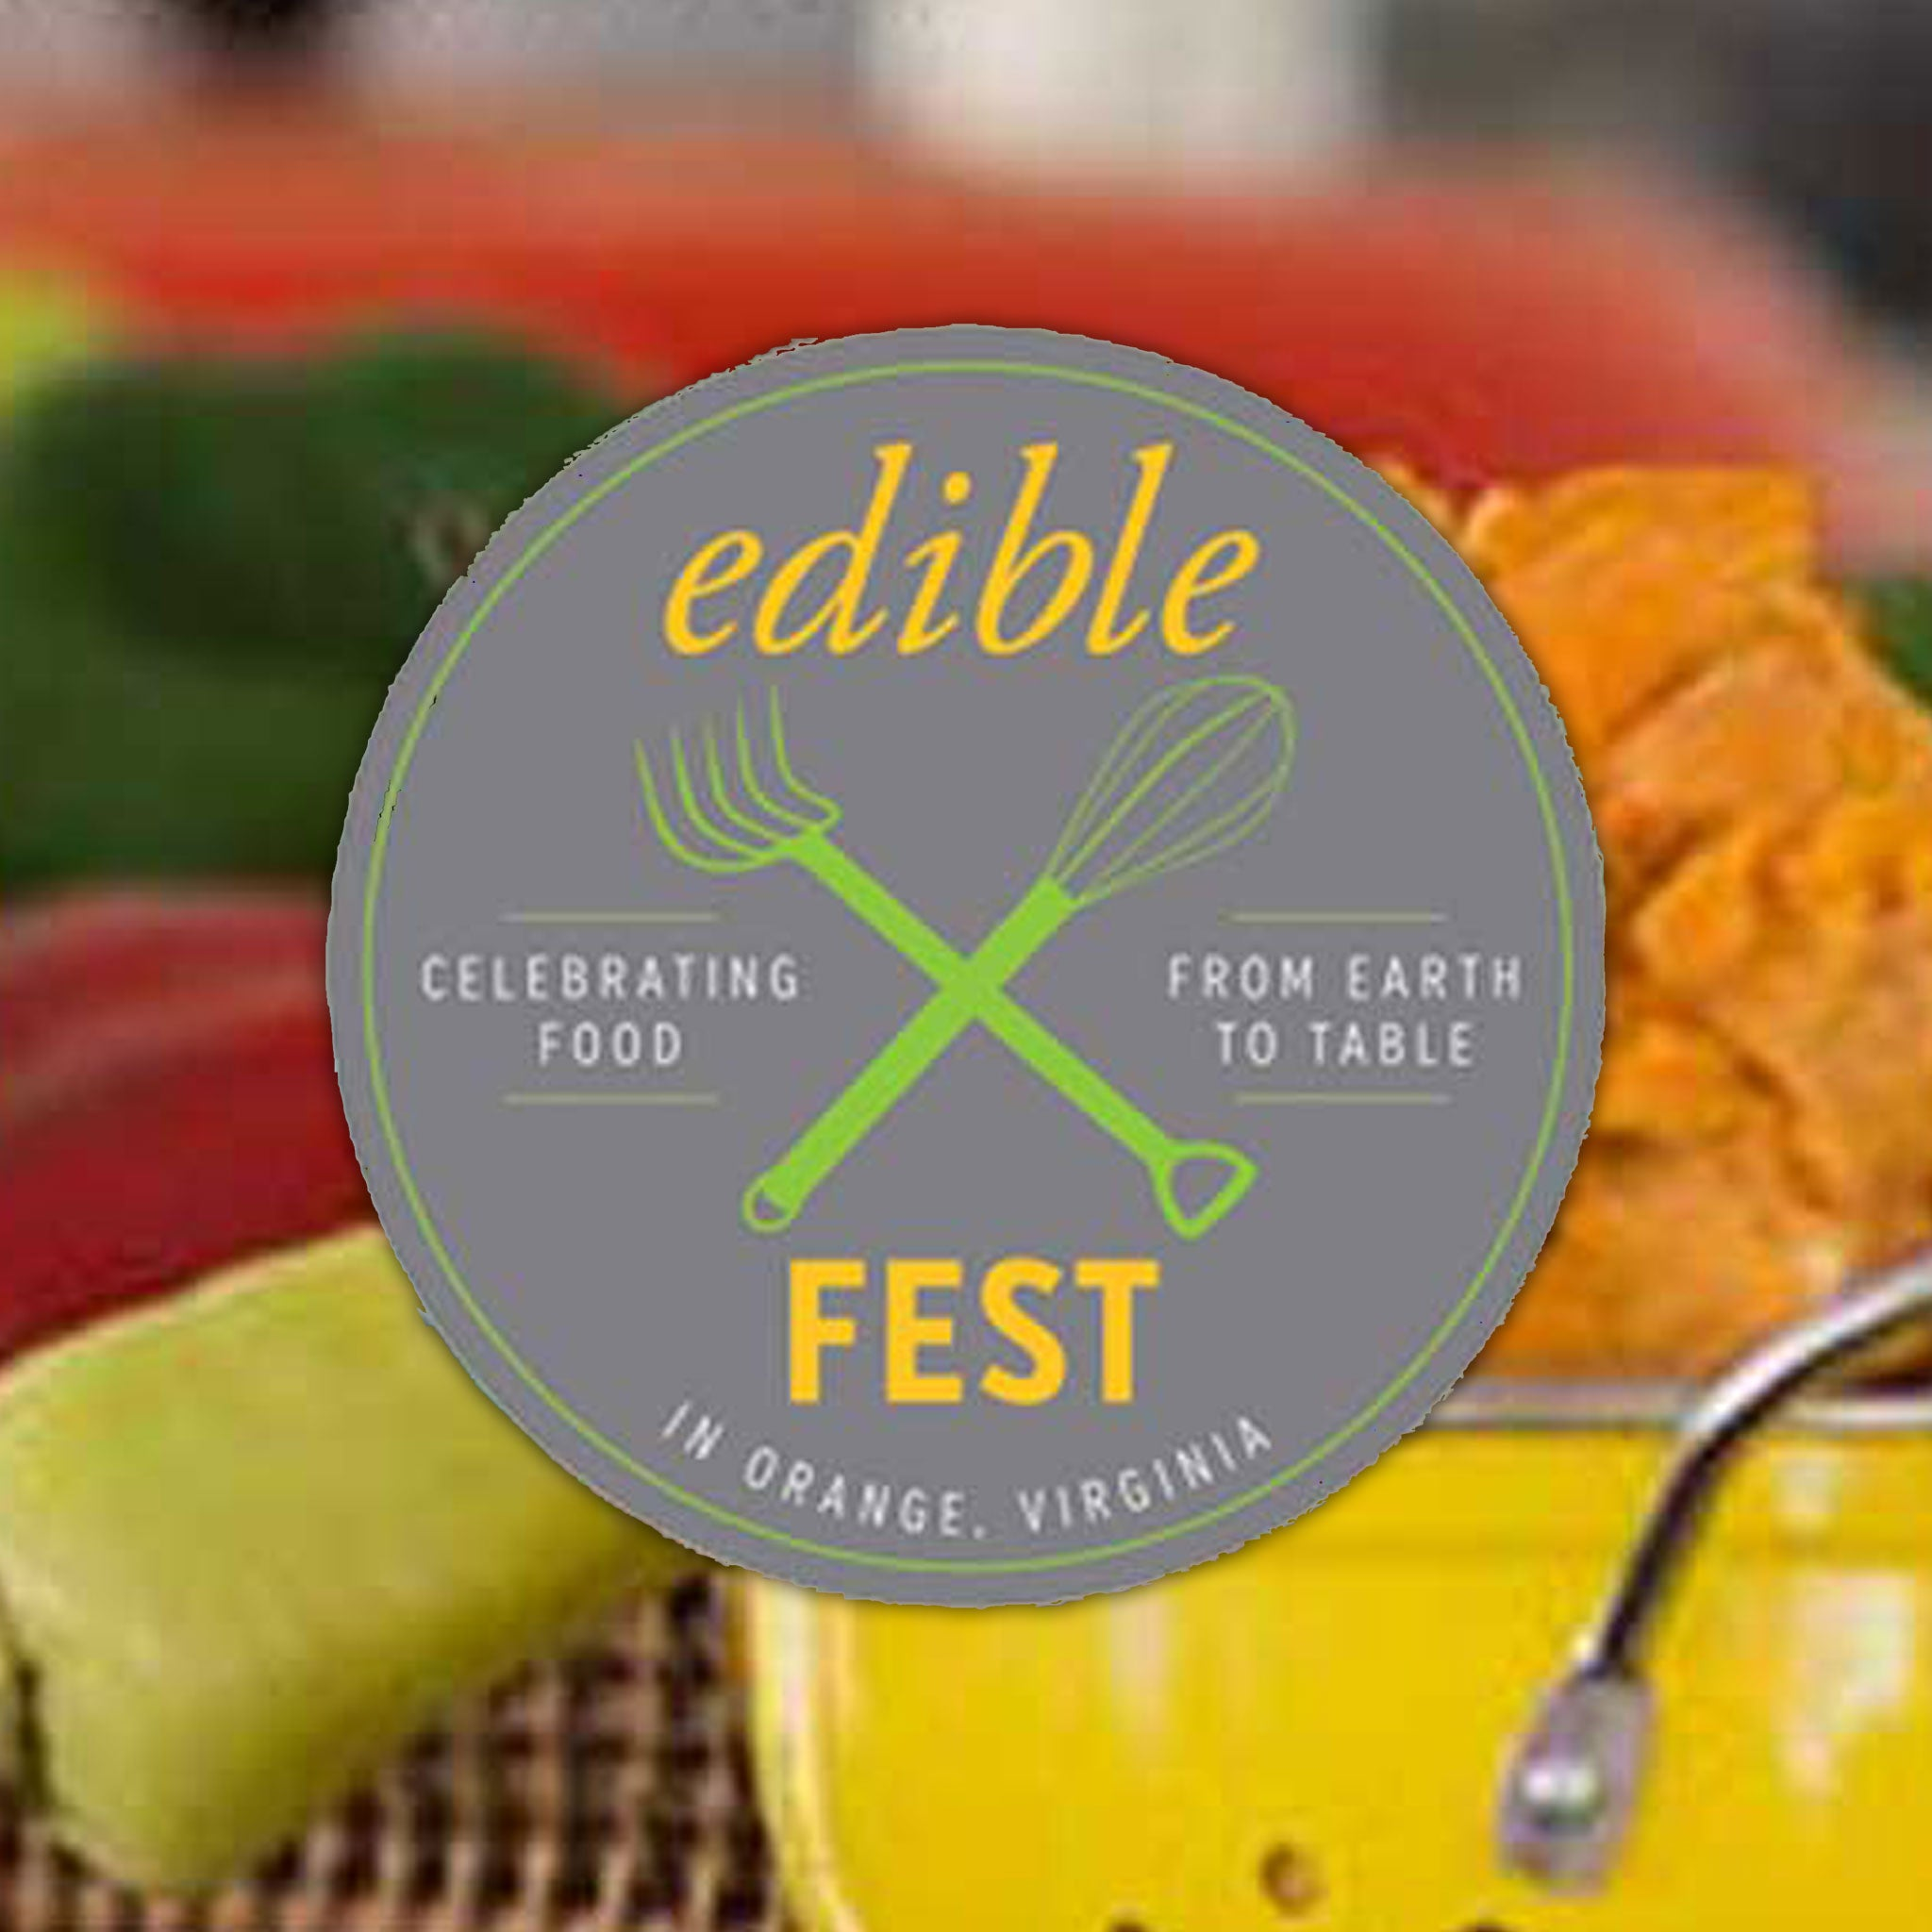 Edible Food Fest 2015